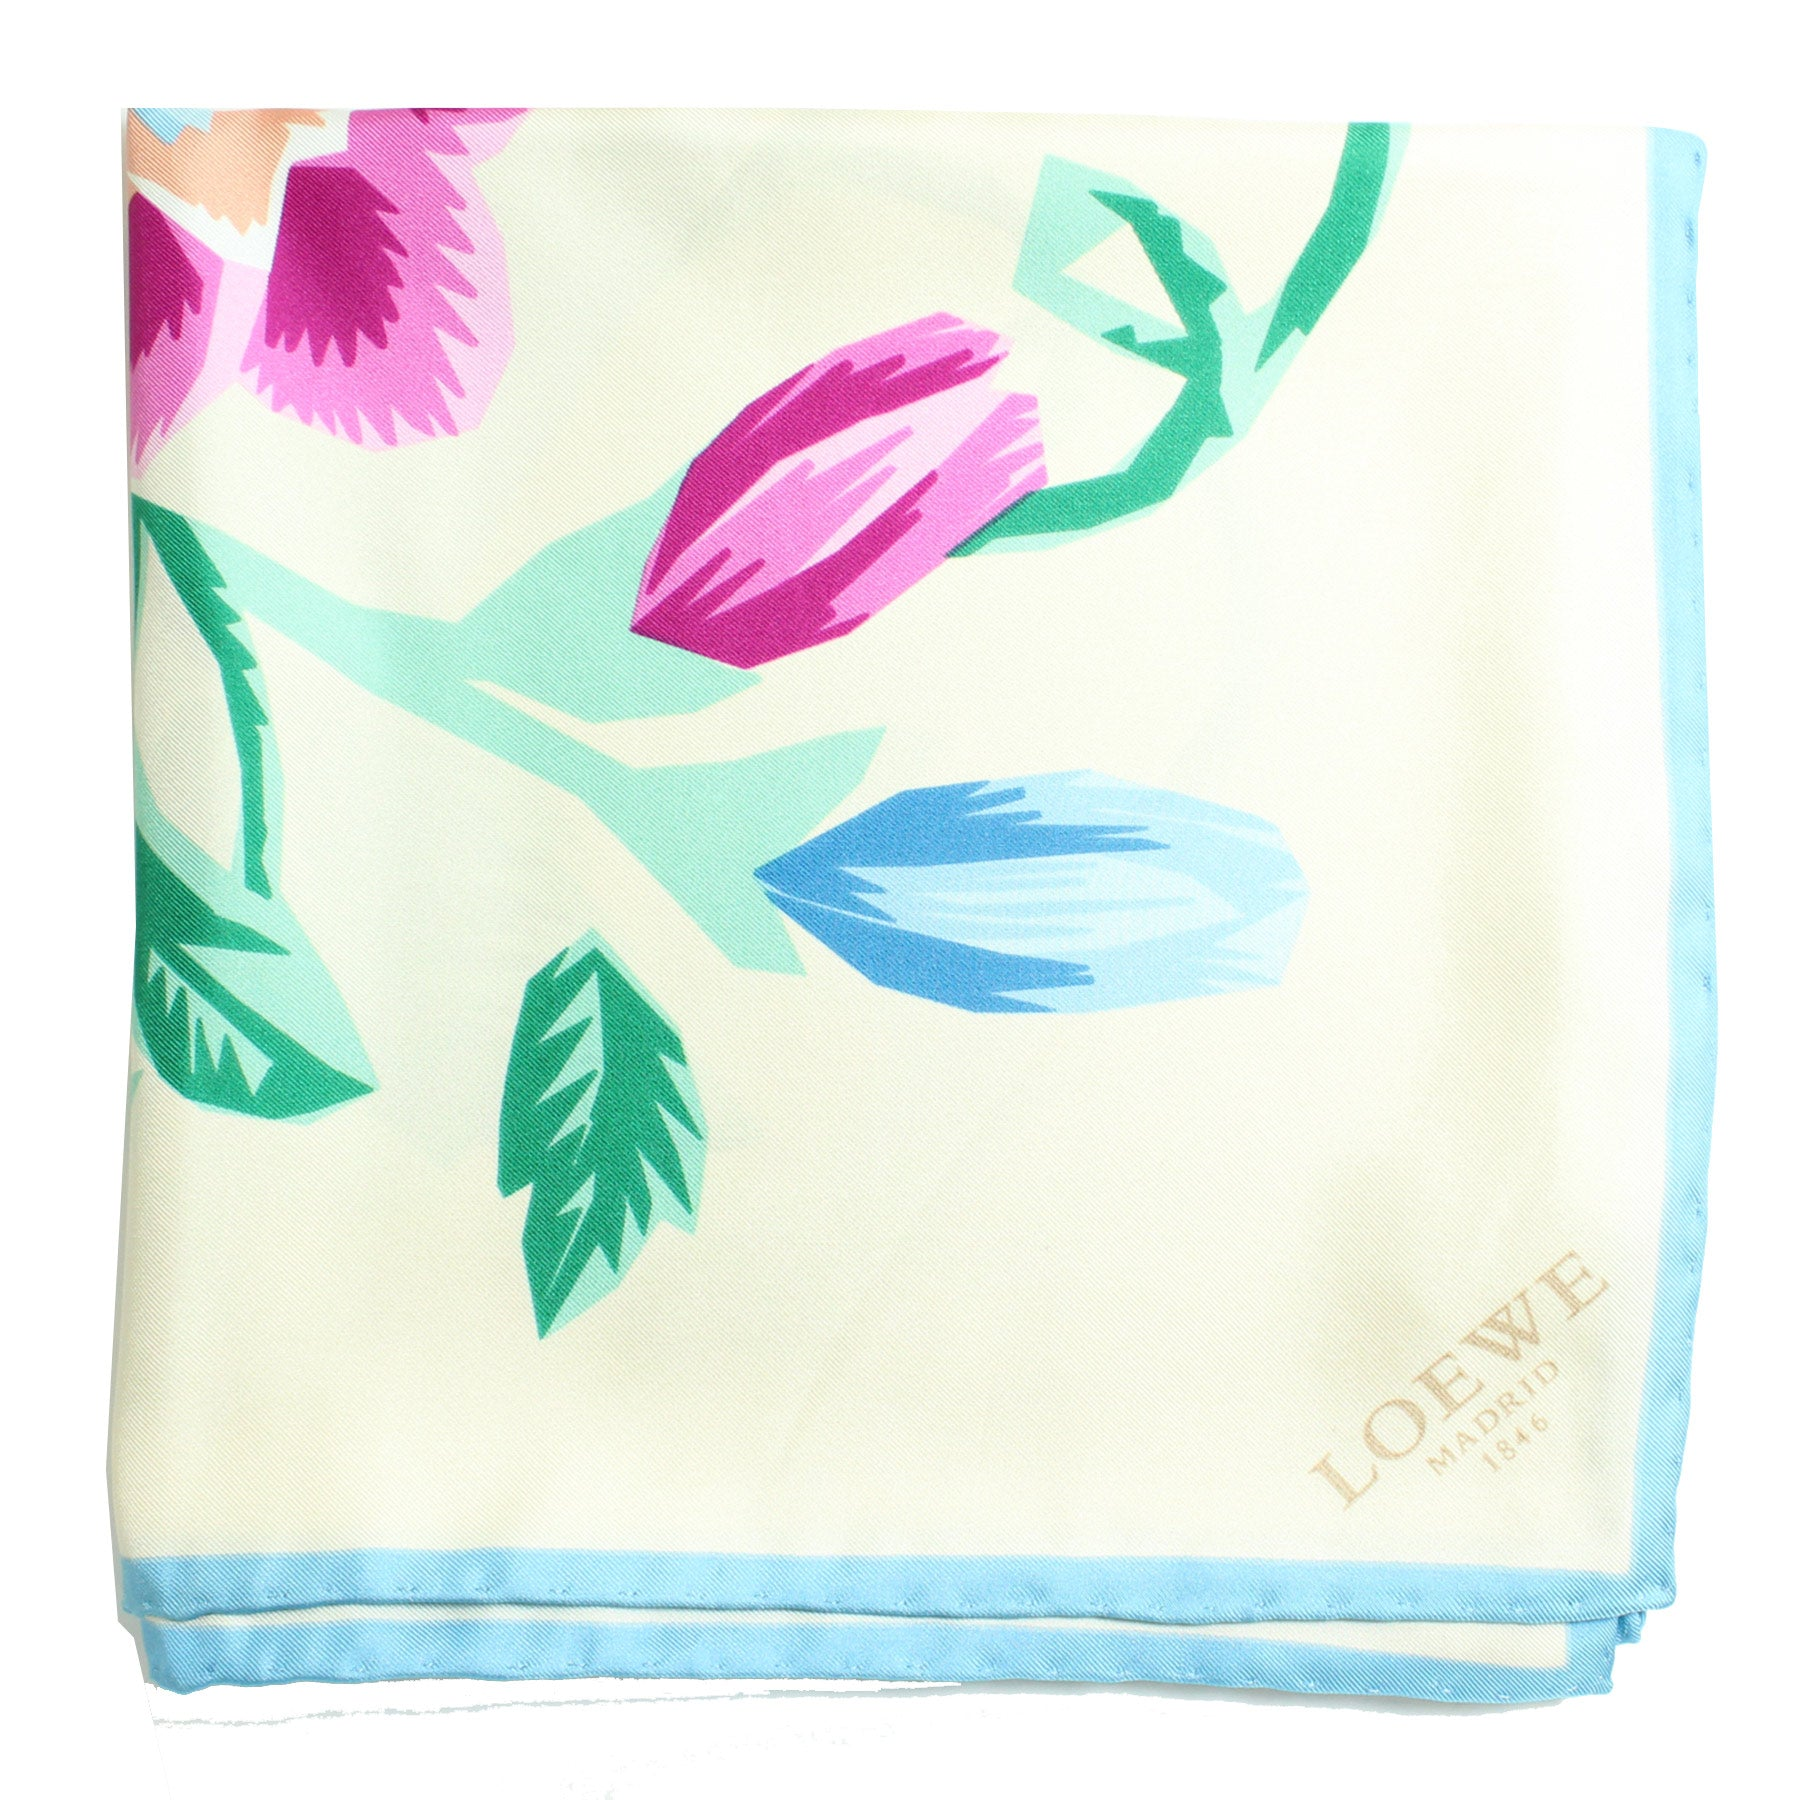 Loewe Scarf White Blue Green Pink Floral - Large Twill Silk Square Scarf